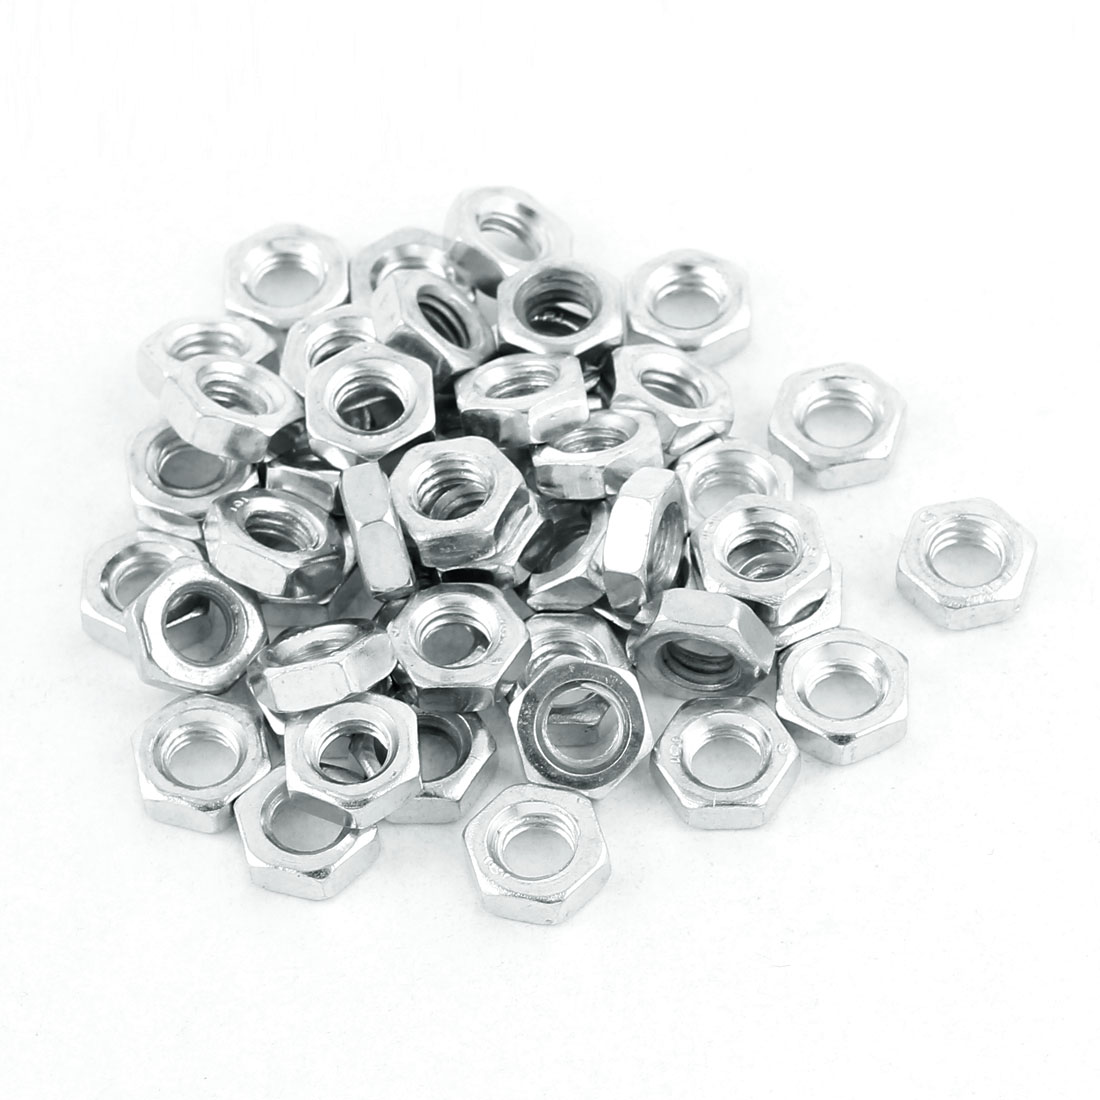 M6 Thread Dia 304 Stainless Steel Metric Hex Nut Screw Cap Fastener Silver Tone 50pcs